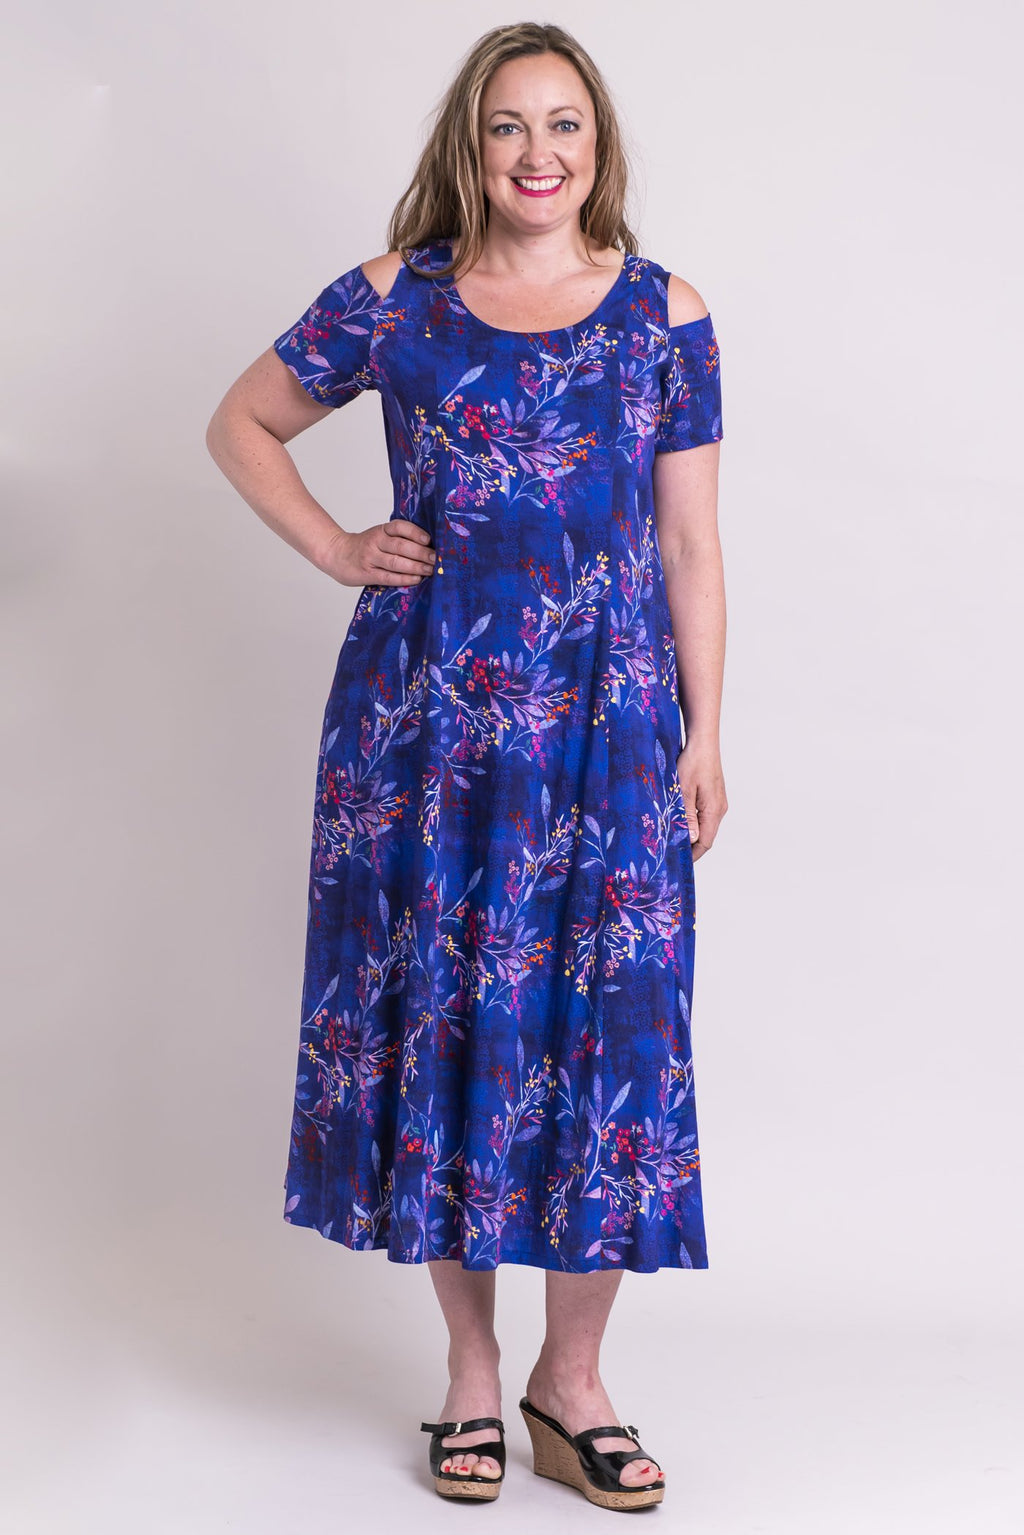 Trina Dress, Violetta, Linen Bamboo - Blue Sky Clothing Co